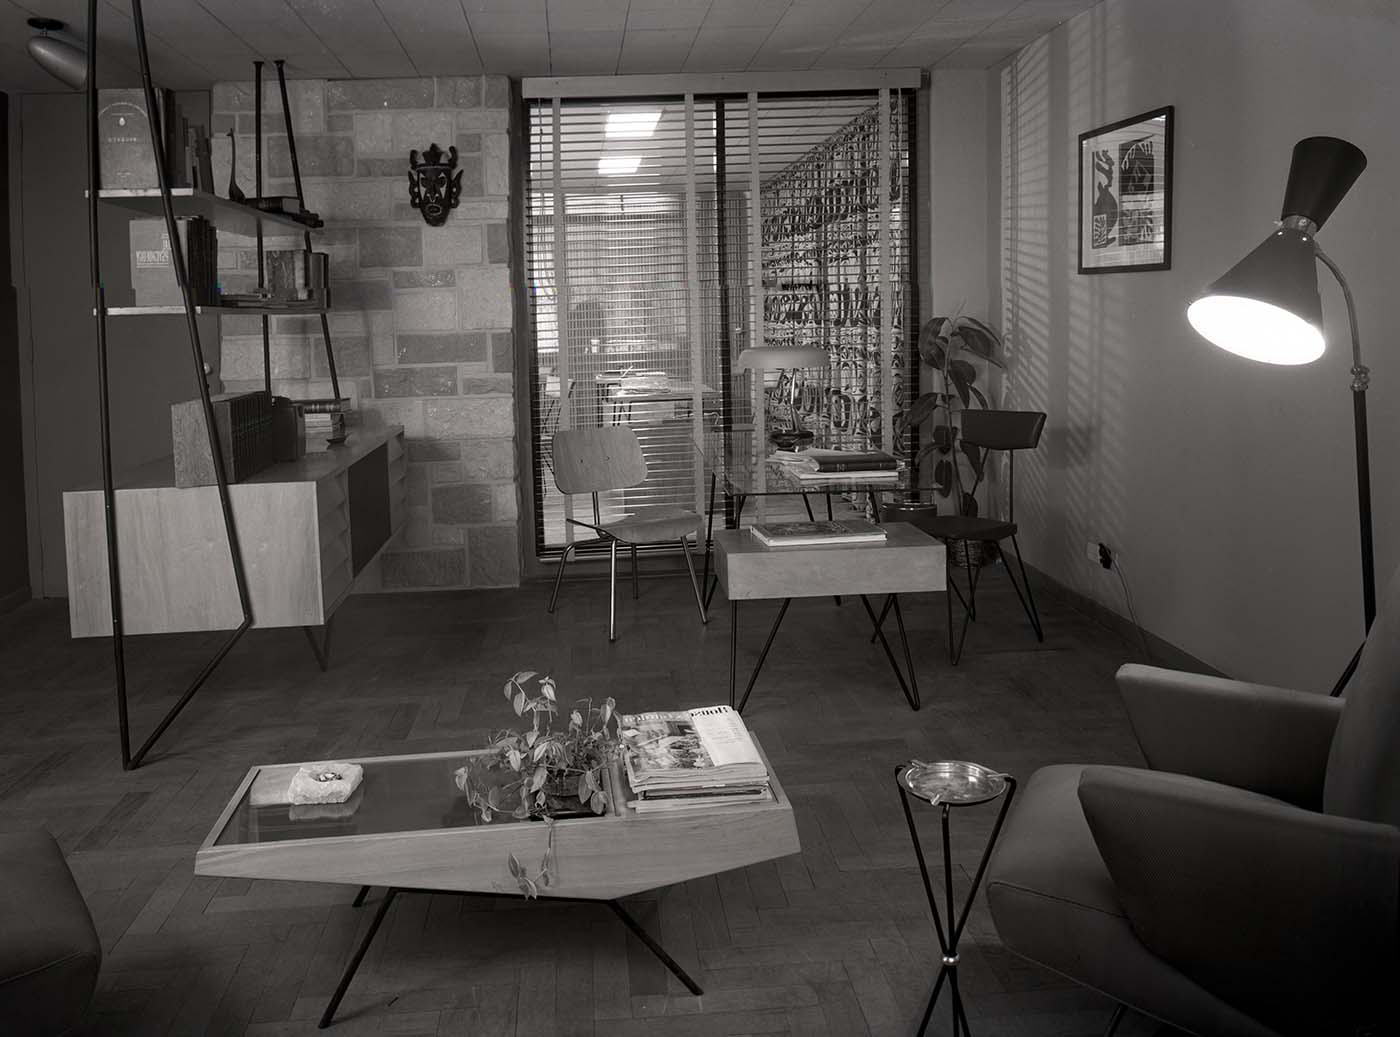 Unidentified Interior, Photo by Fred Schiffer, 1967.